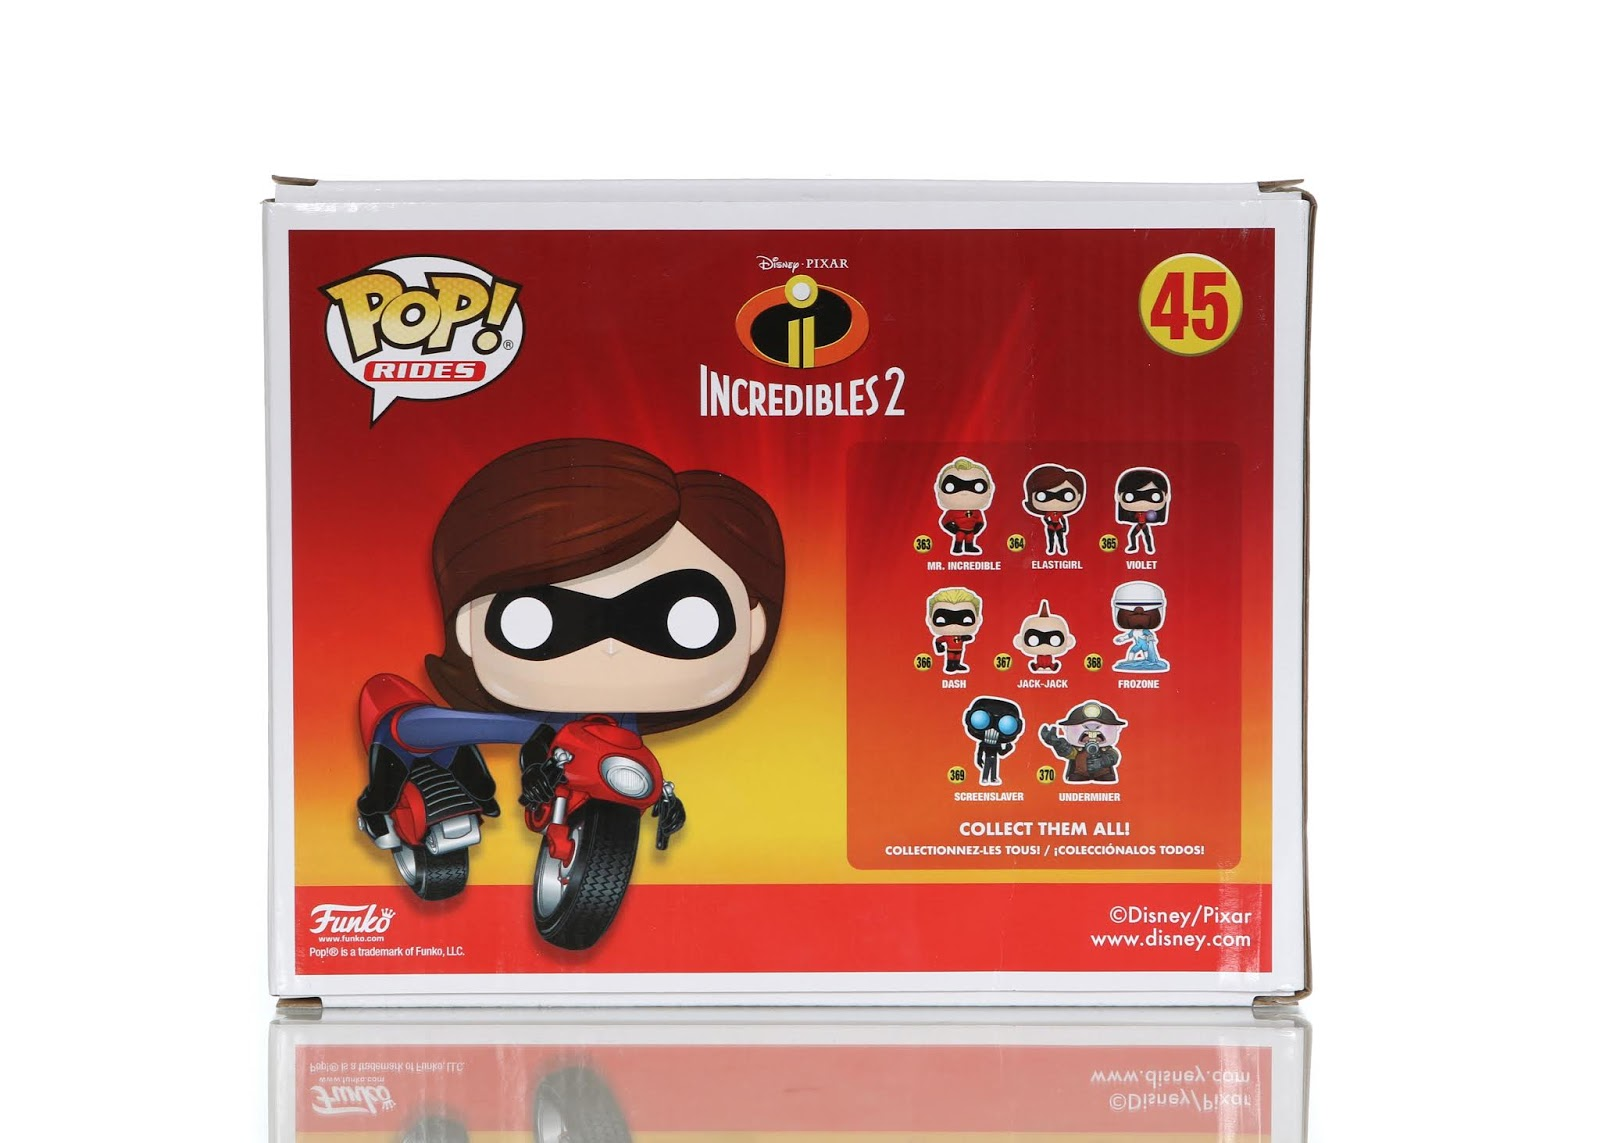 "Incredibles 2 Funko POP! ""Rides"" Elastigirl on Elasticycle"